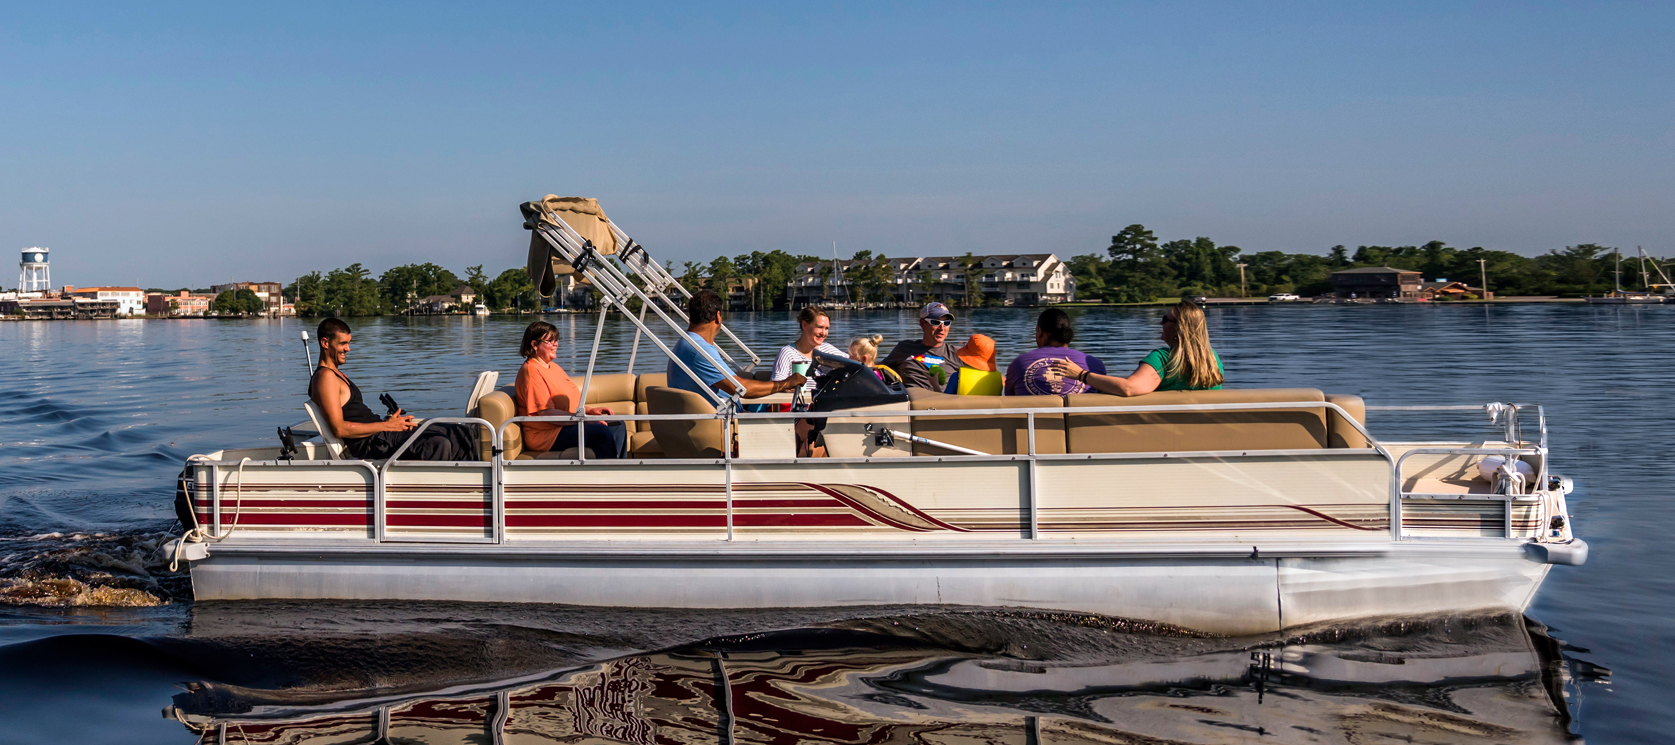 group of people riding pontoon boat on Pasquotank River in Elizabeth City NC